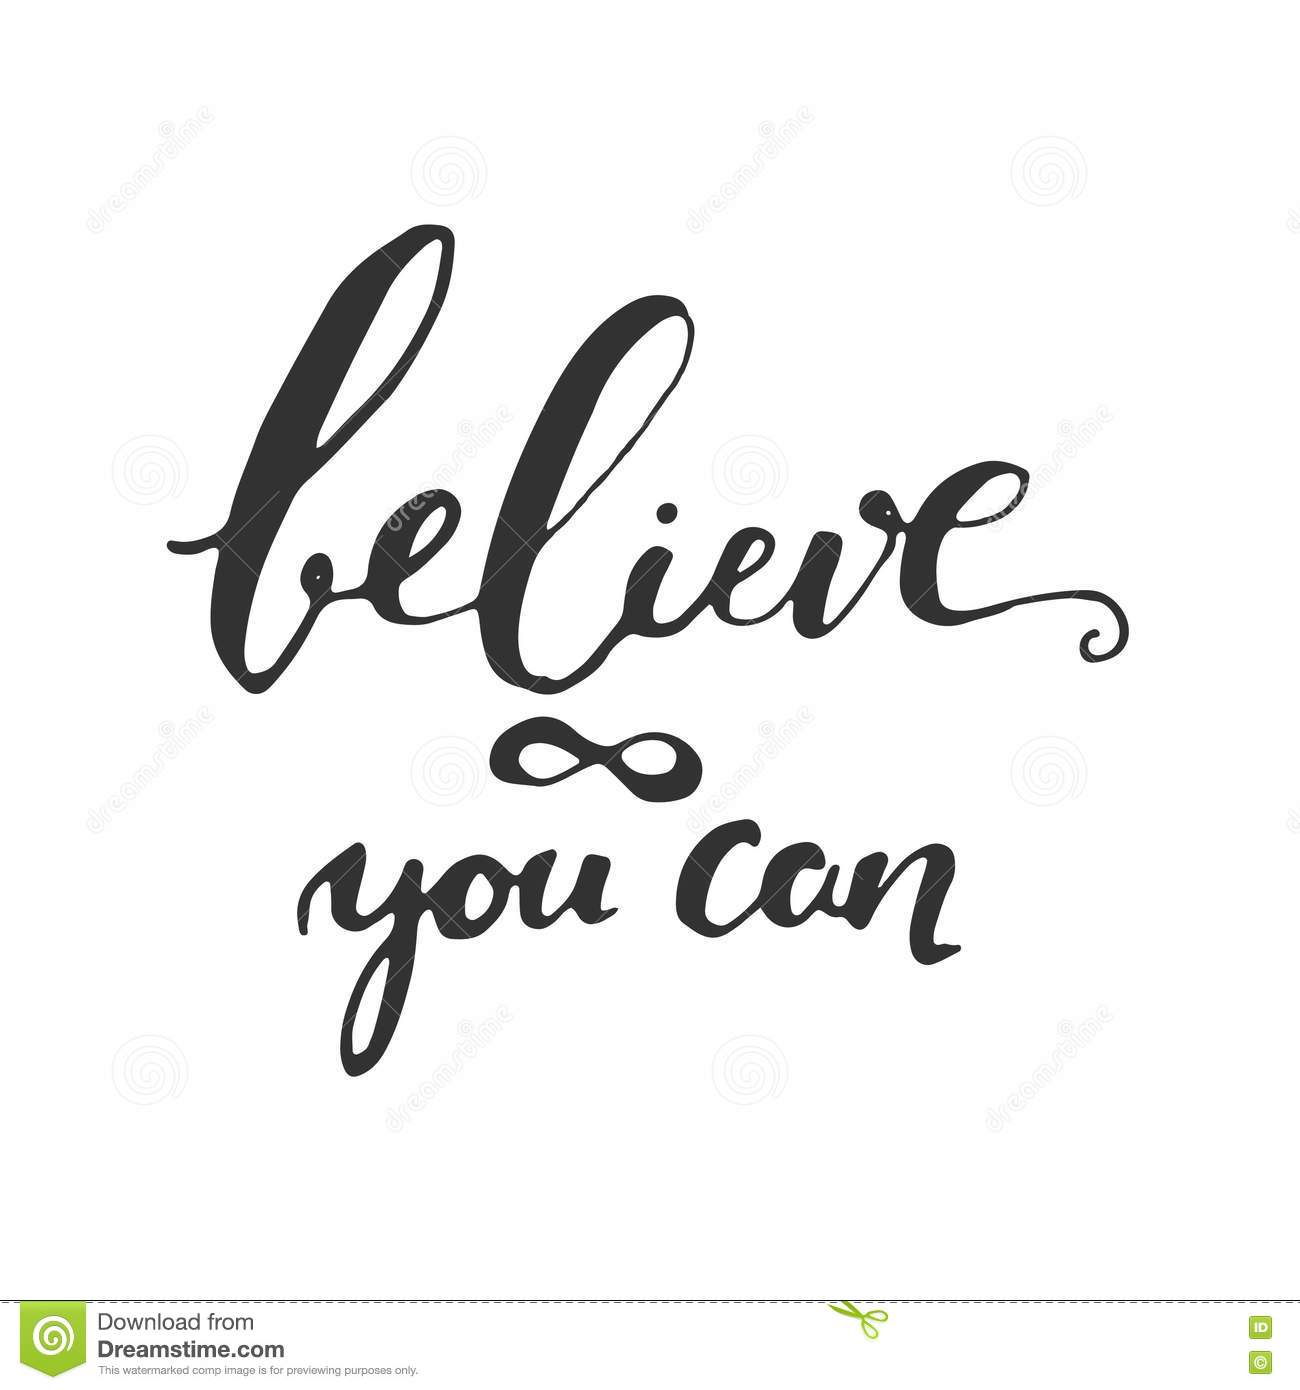 Attractive Believe In Yourself. Inspirational And Motivation Quote For Fitness, Gym.  Modern Calligraphic Style